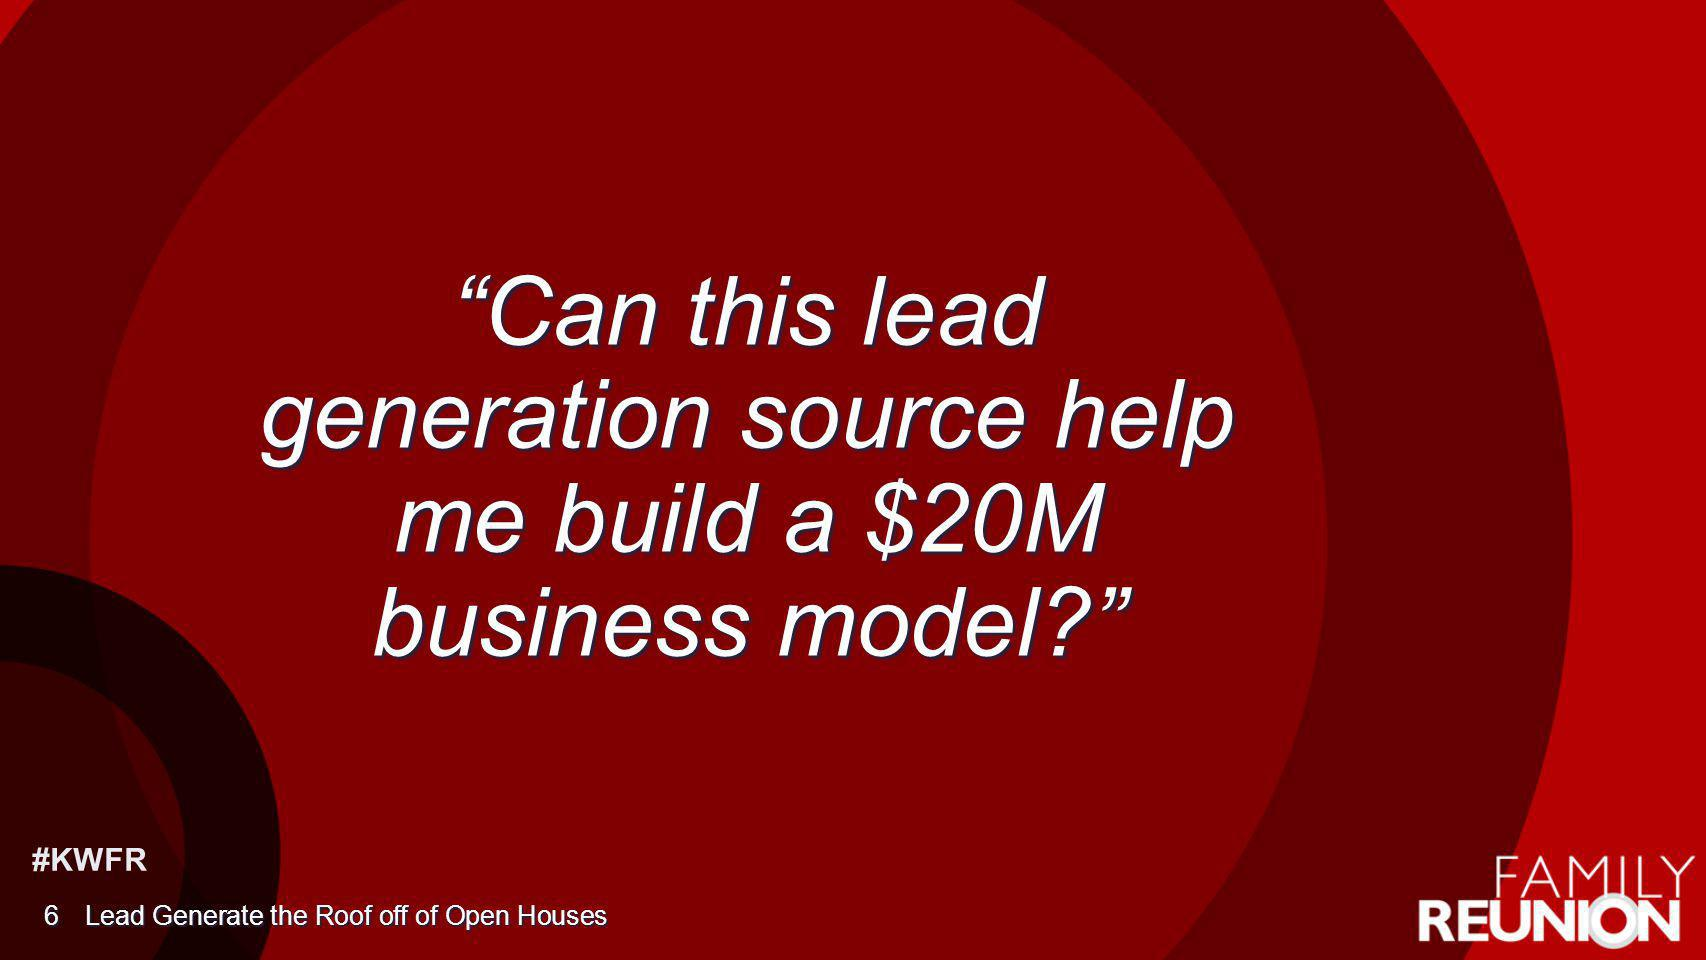 Can this lead generation source help me build a $20M business model